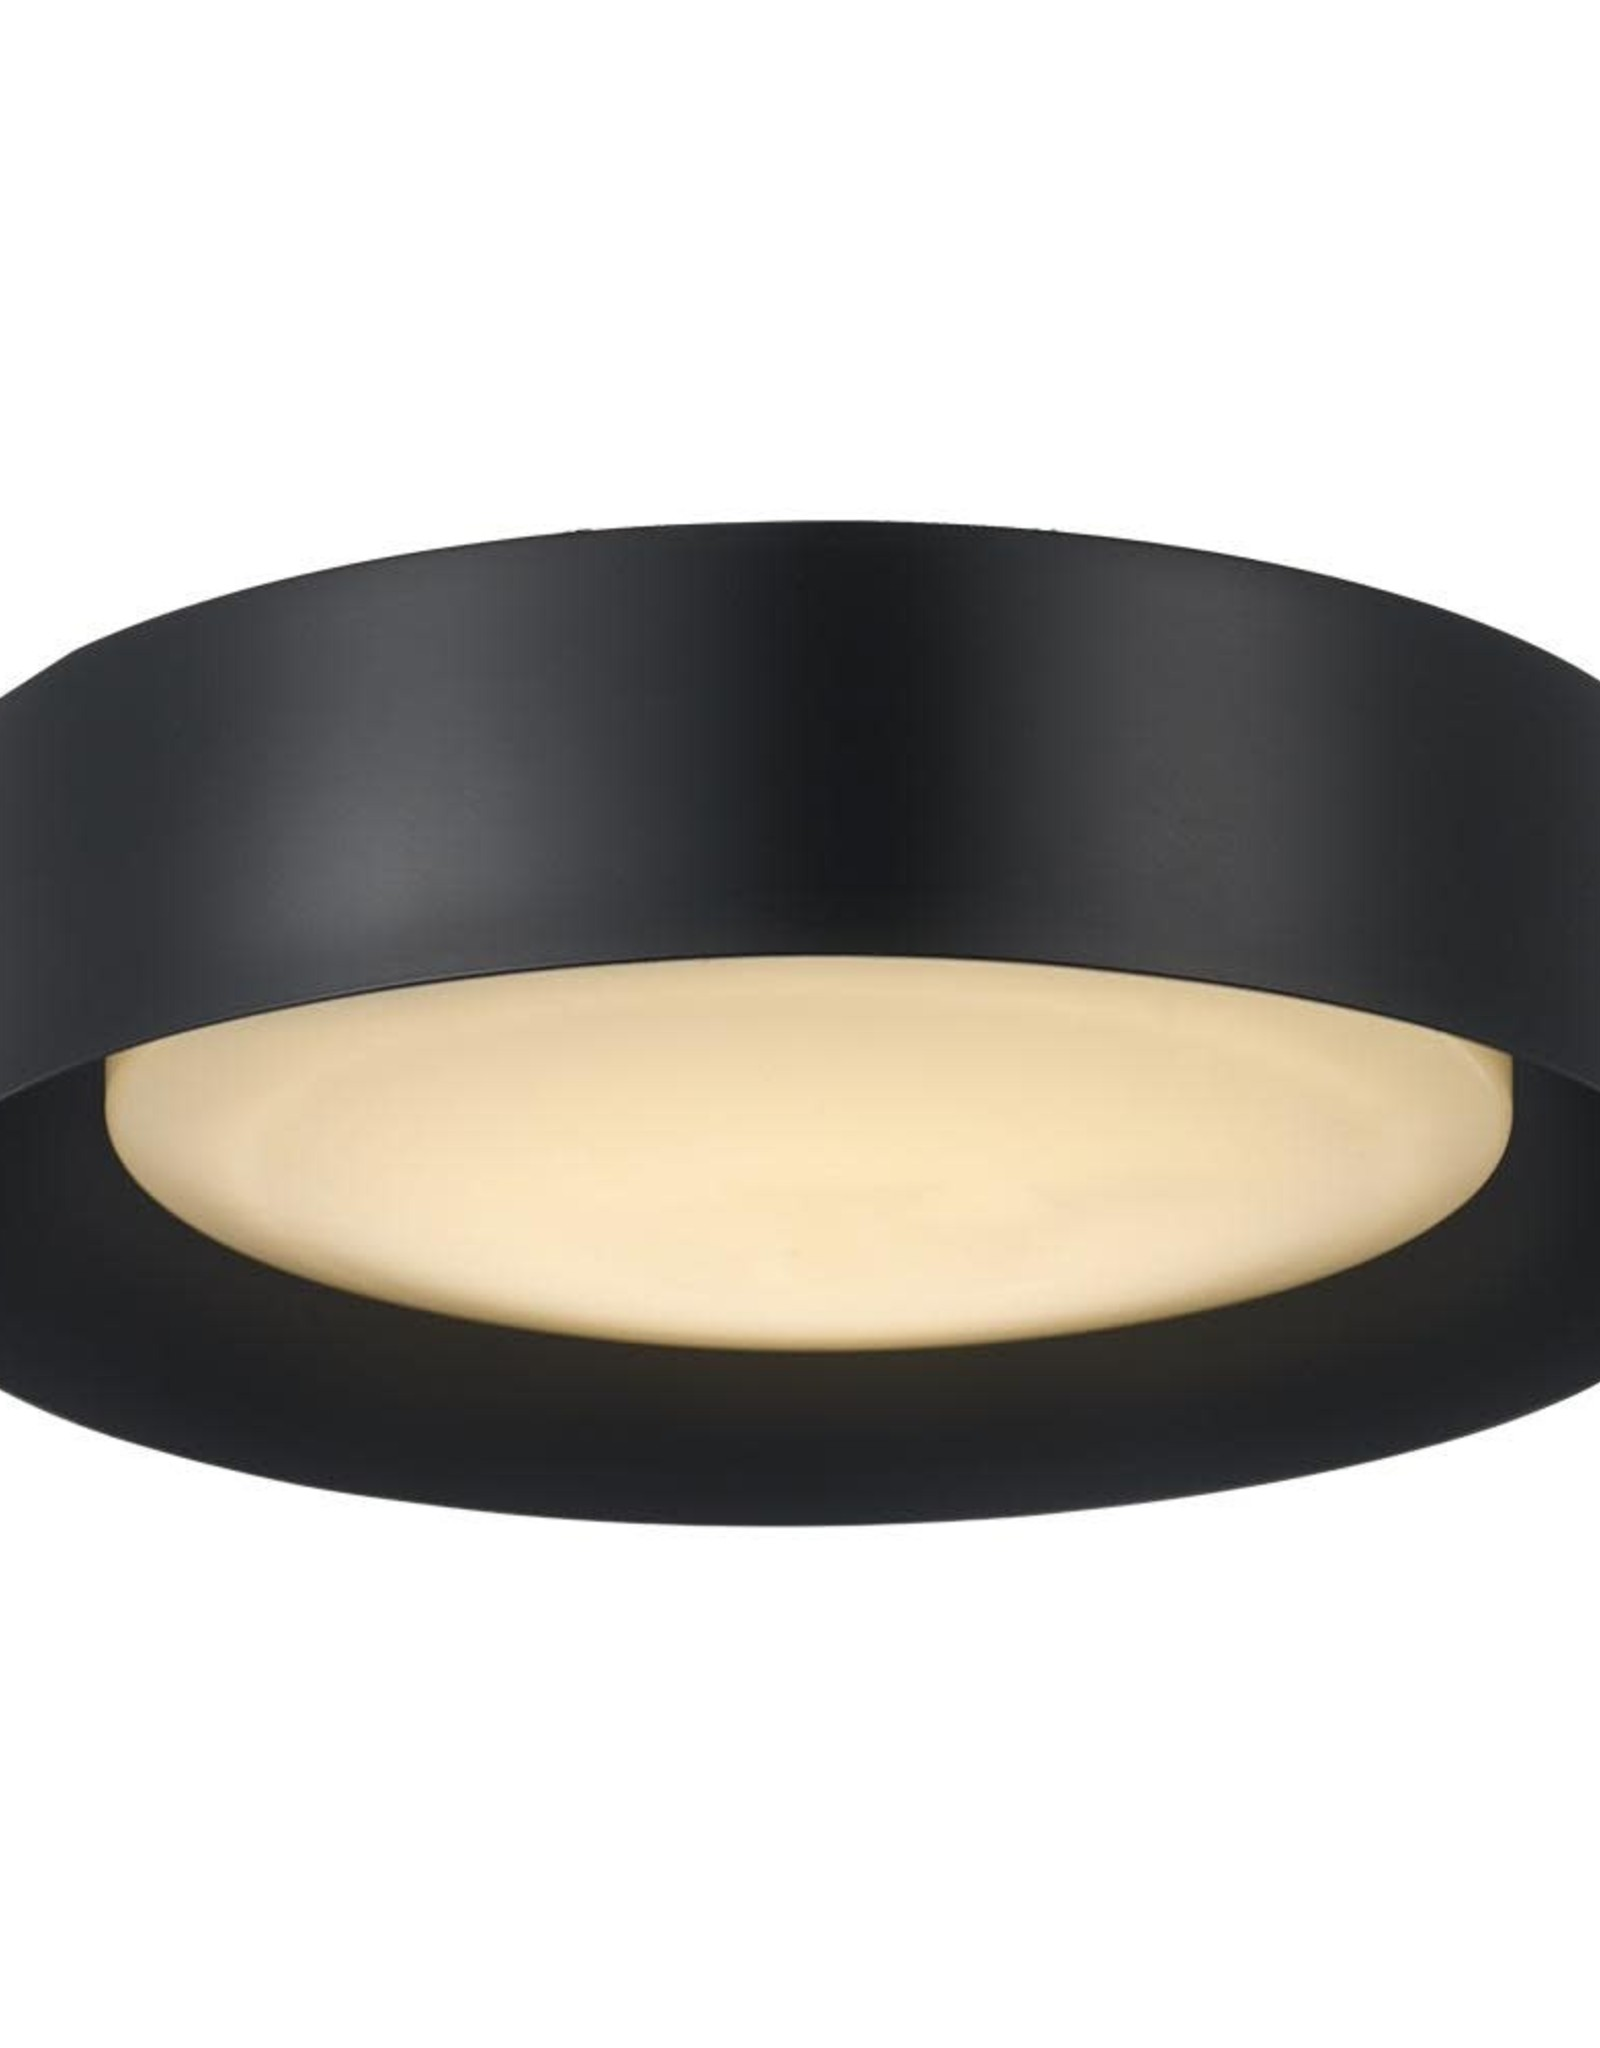 Monteaux Lighting Monteaux 13 in. Black Integrated LED Flush Mount